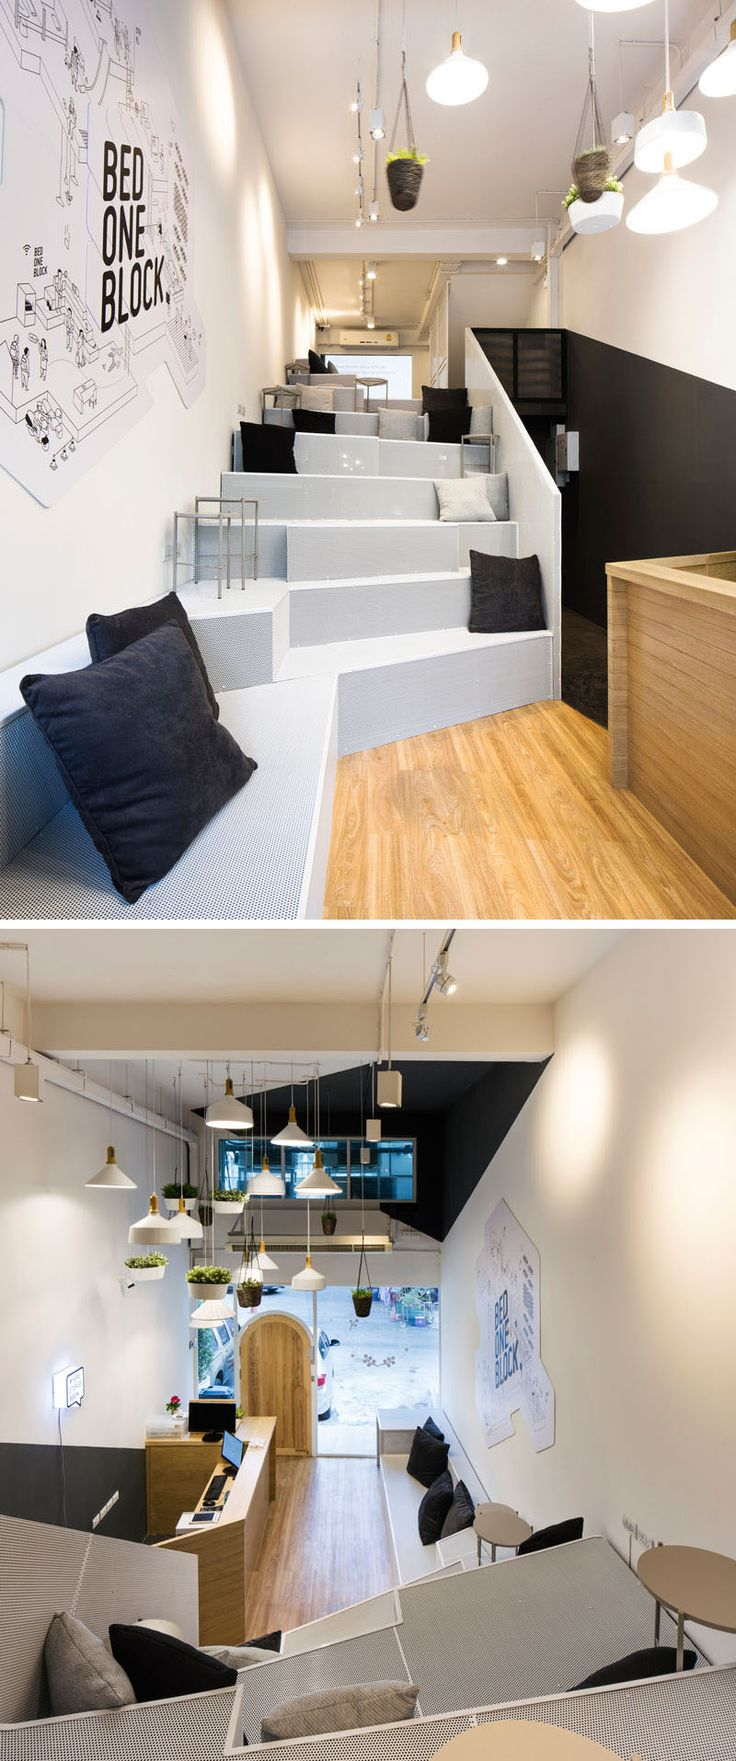 Inside is modern hostel in Bangkok, the reception desk is on the right, while bright white steps create a common area for people to meet up, work or relax.